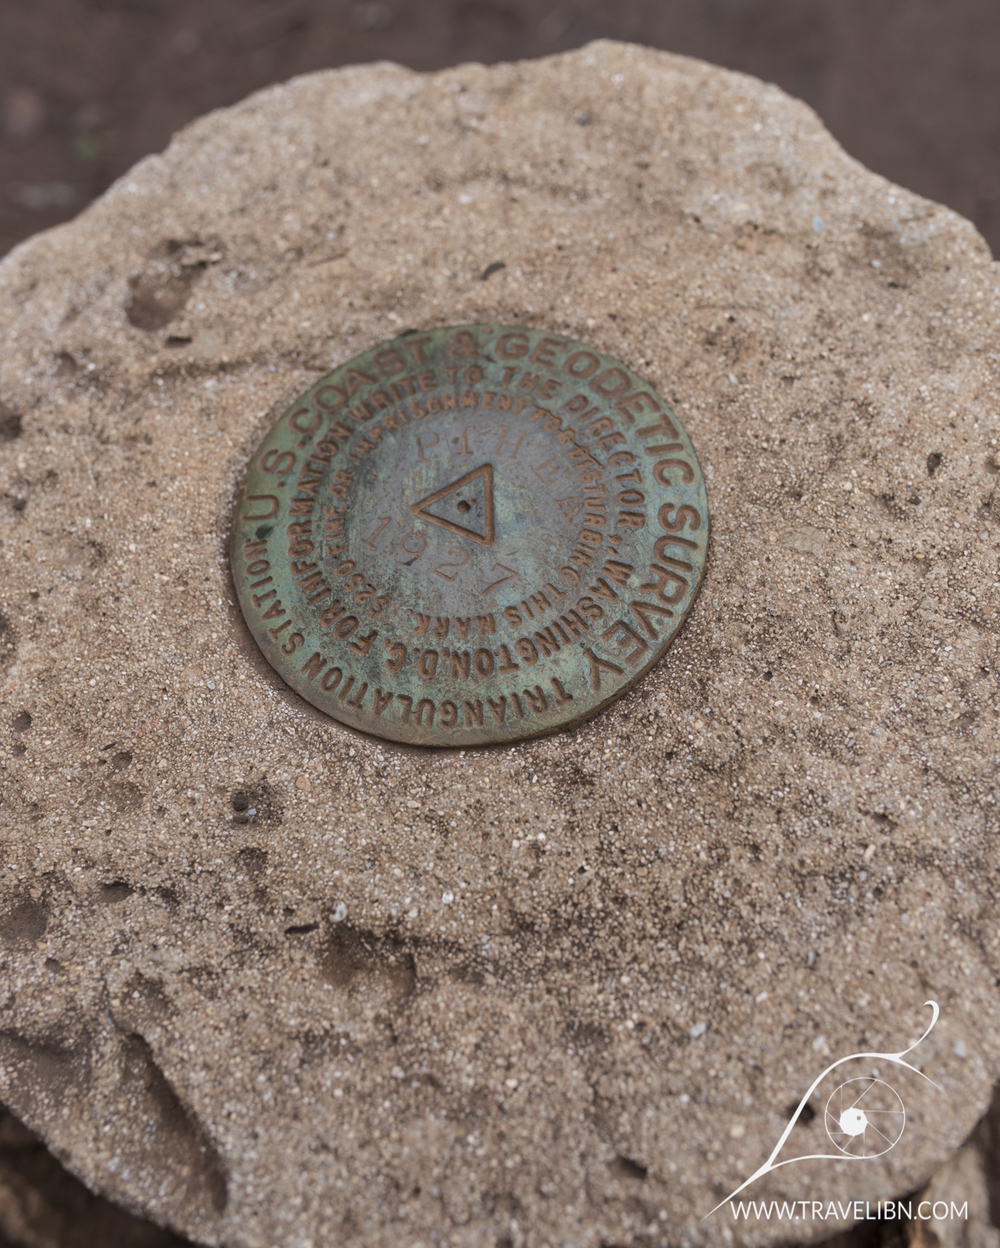 1927 US Coast &Geodetic Survey Benchmark